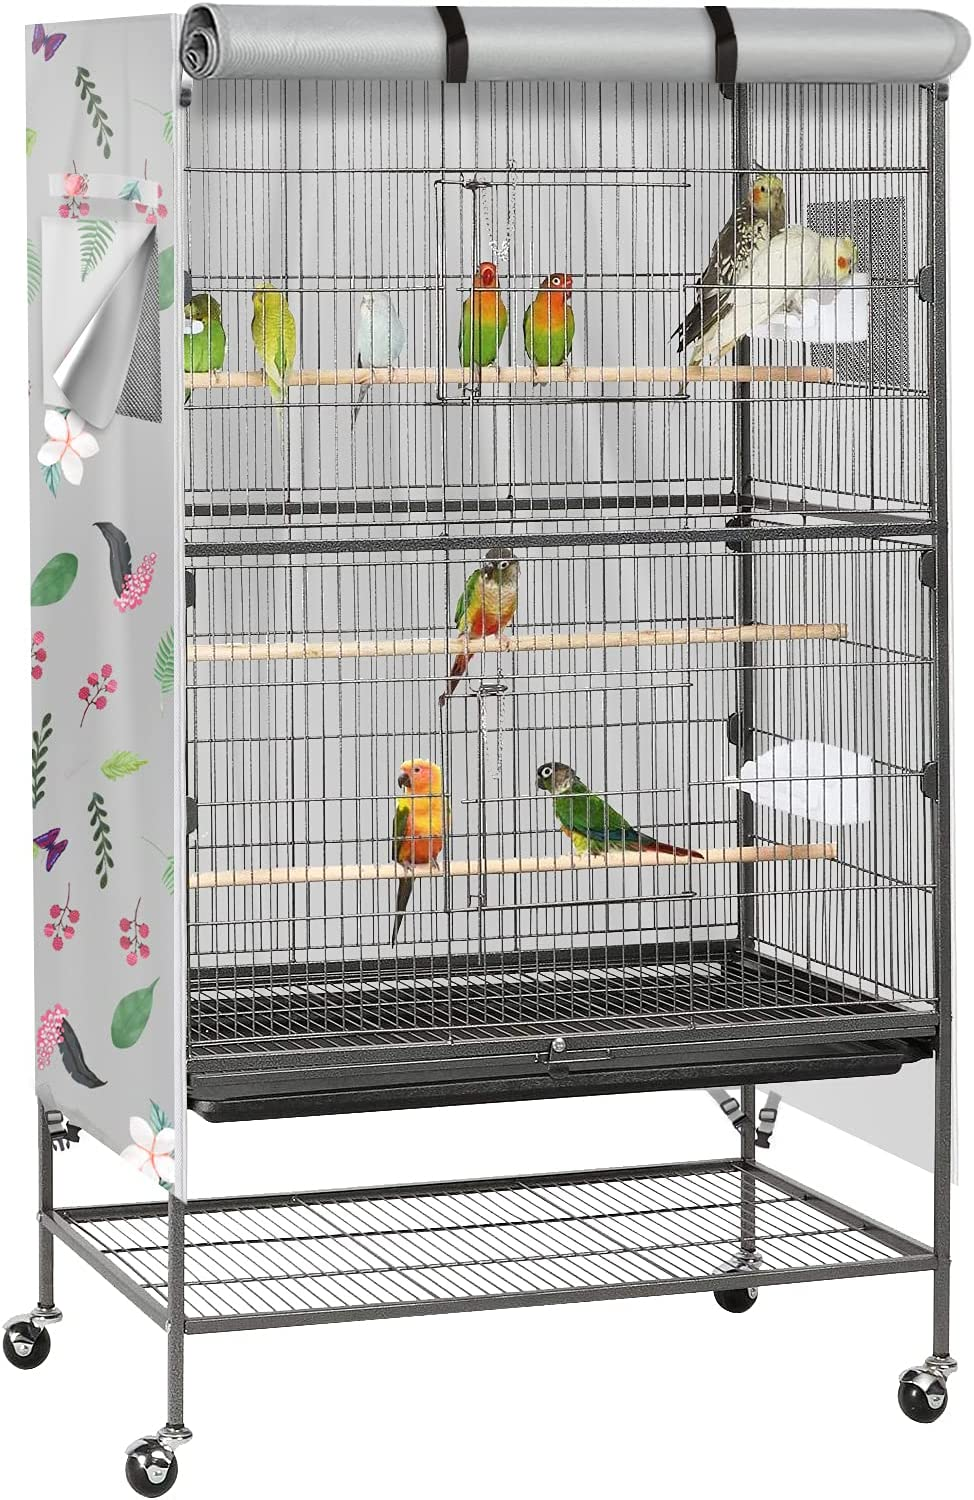 Birdcage Max 67% OFF Cover Universal cage Durable Shipping included Breathable Washable